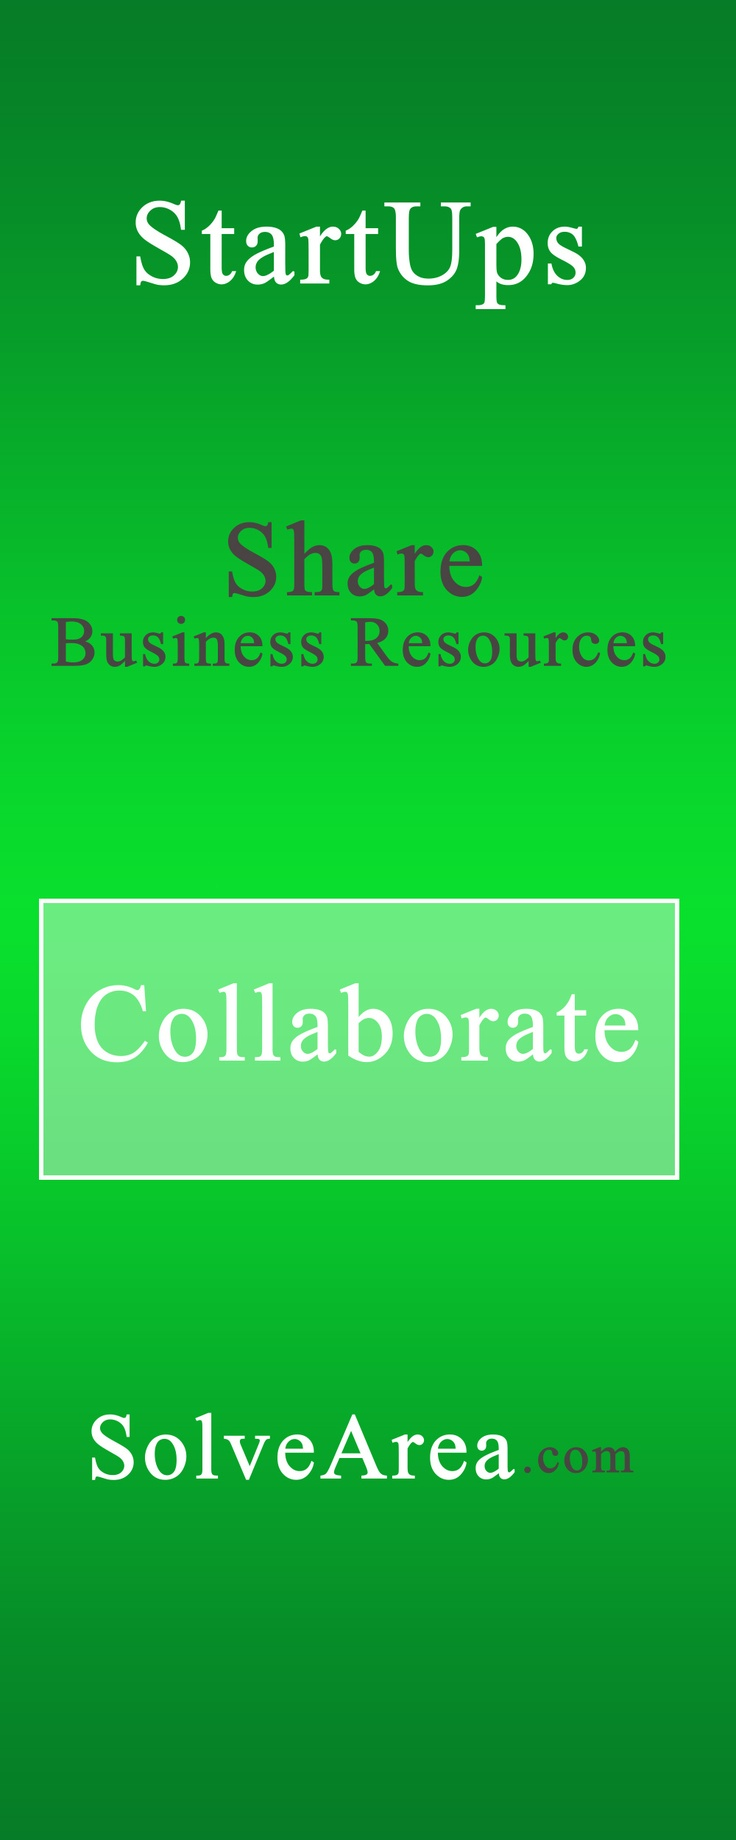 Collaborate with StartUps and Share Business Resources on SolveArea.com